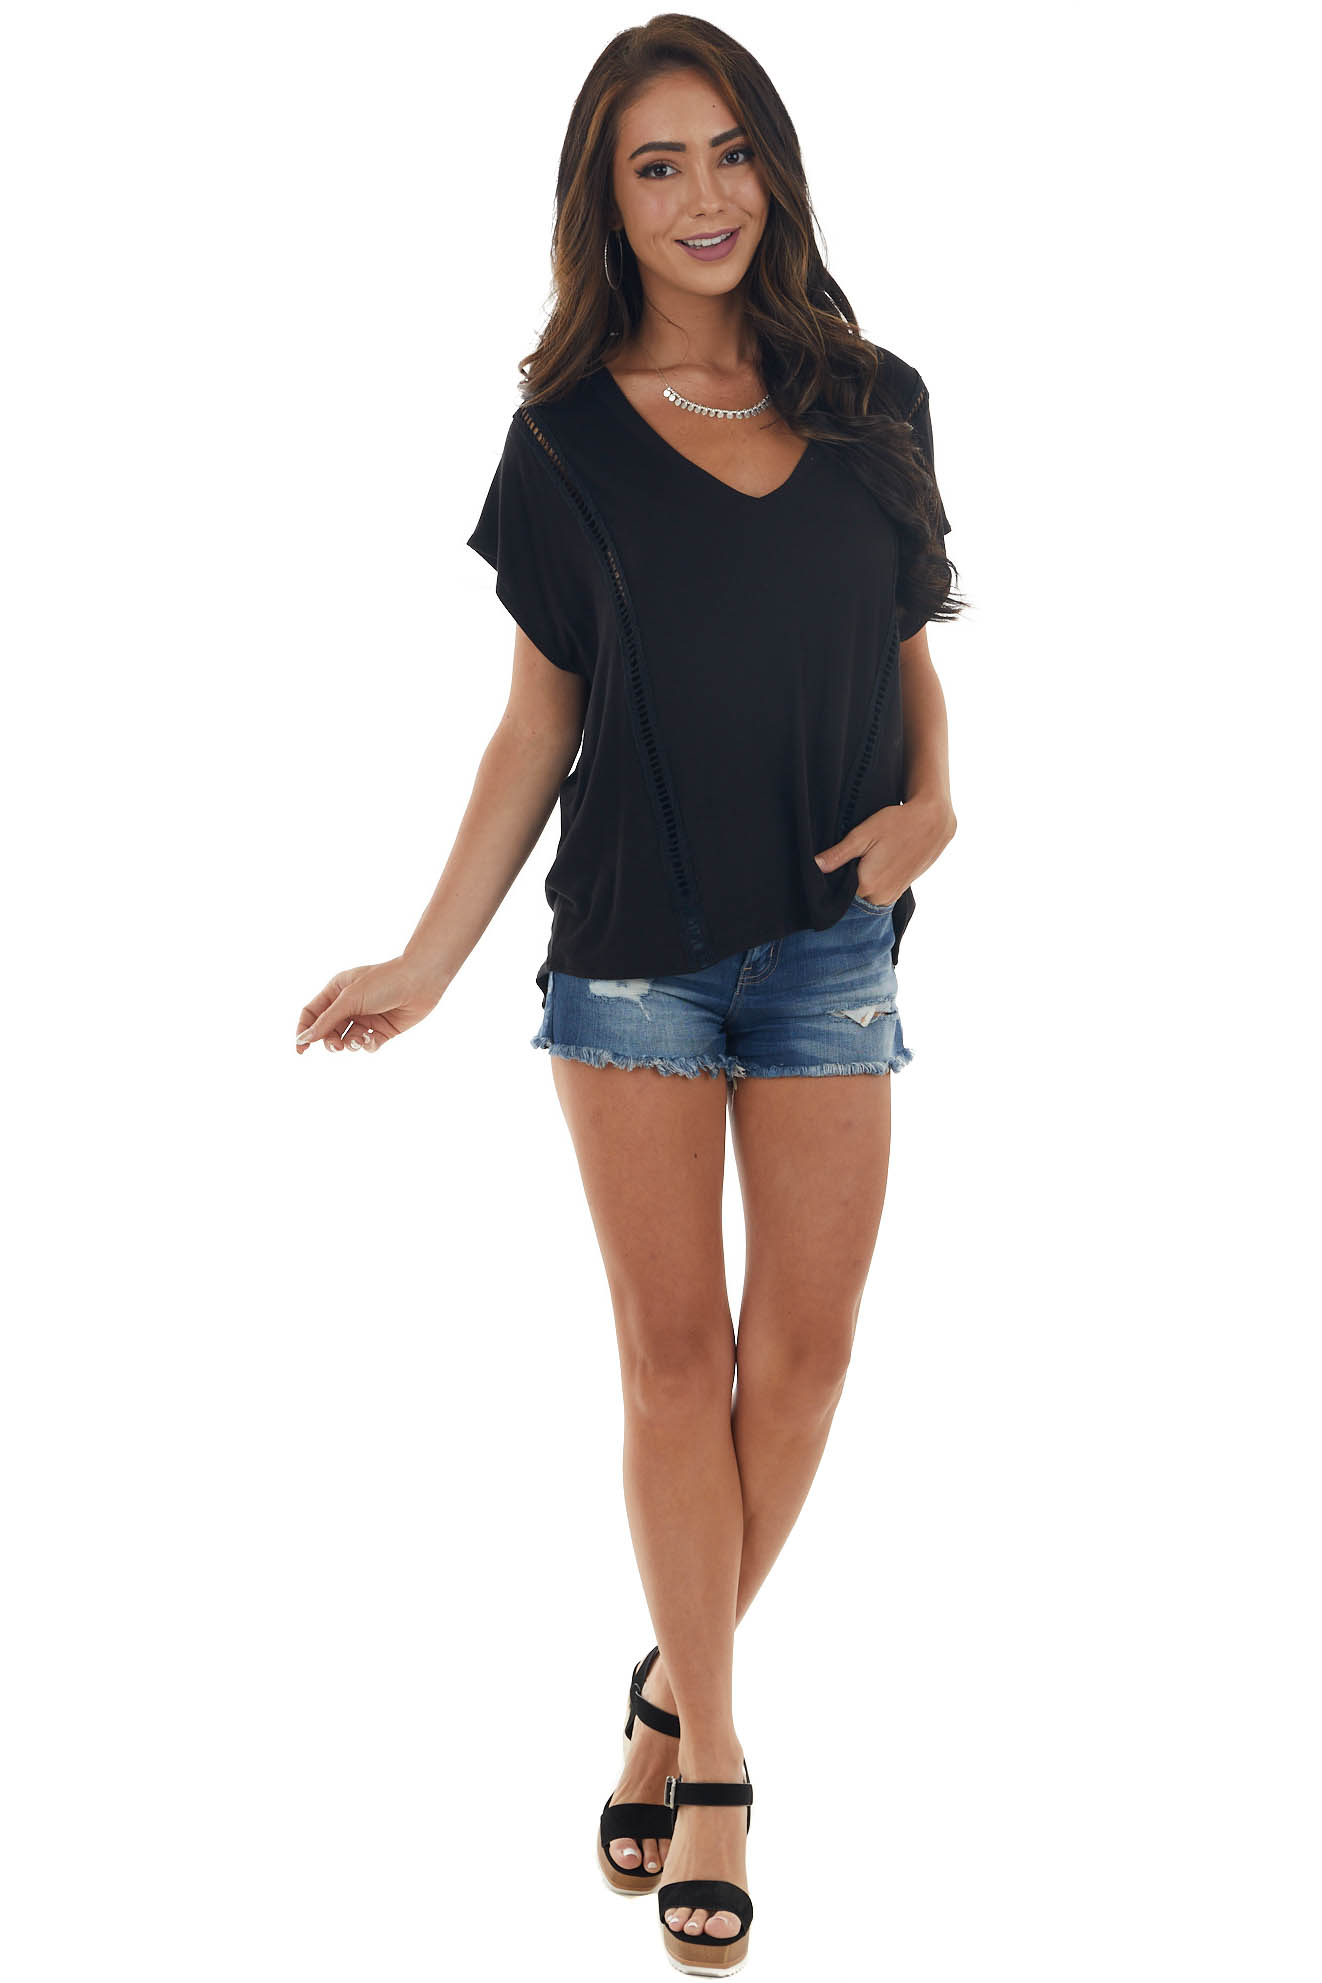 Black Soft Knit Top with Peekaboo Lace Trim